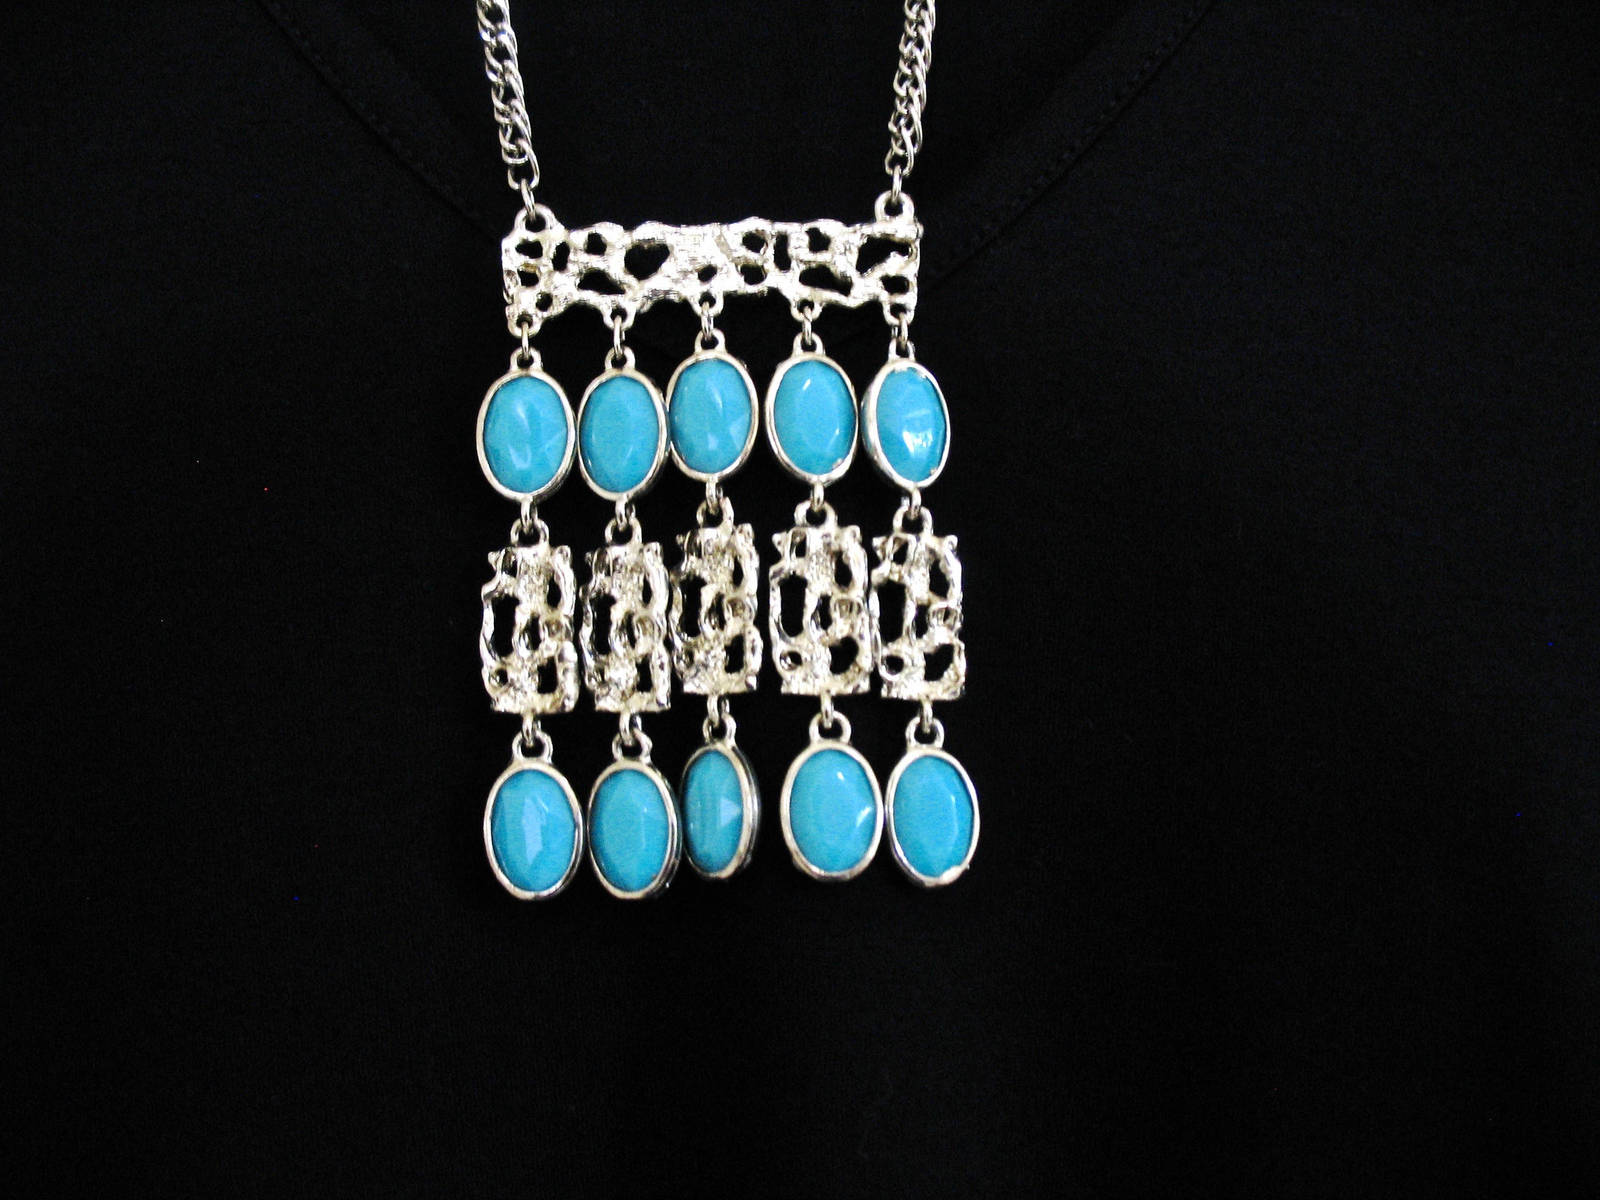 Vintage Bib Necklace, Waterfall, Egyptian Revival, Etruscan, 1970's, Turquoise D